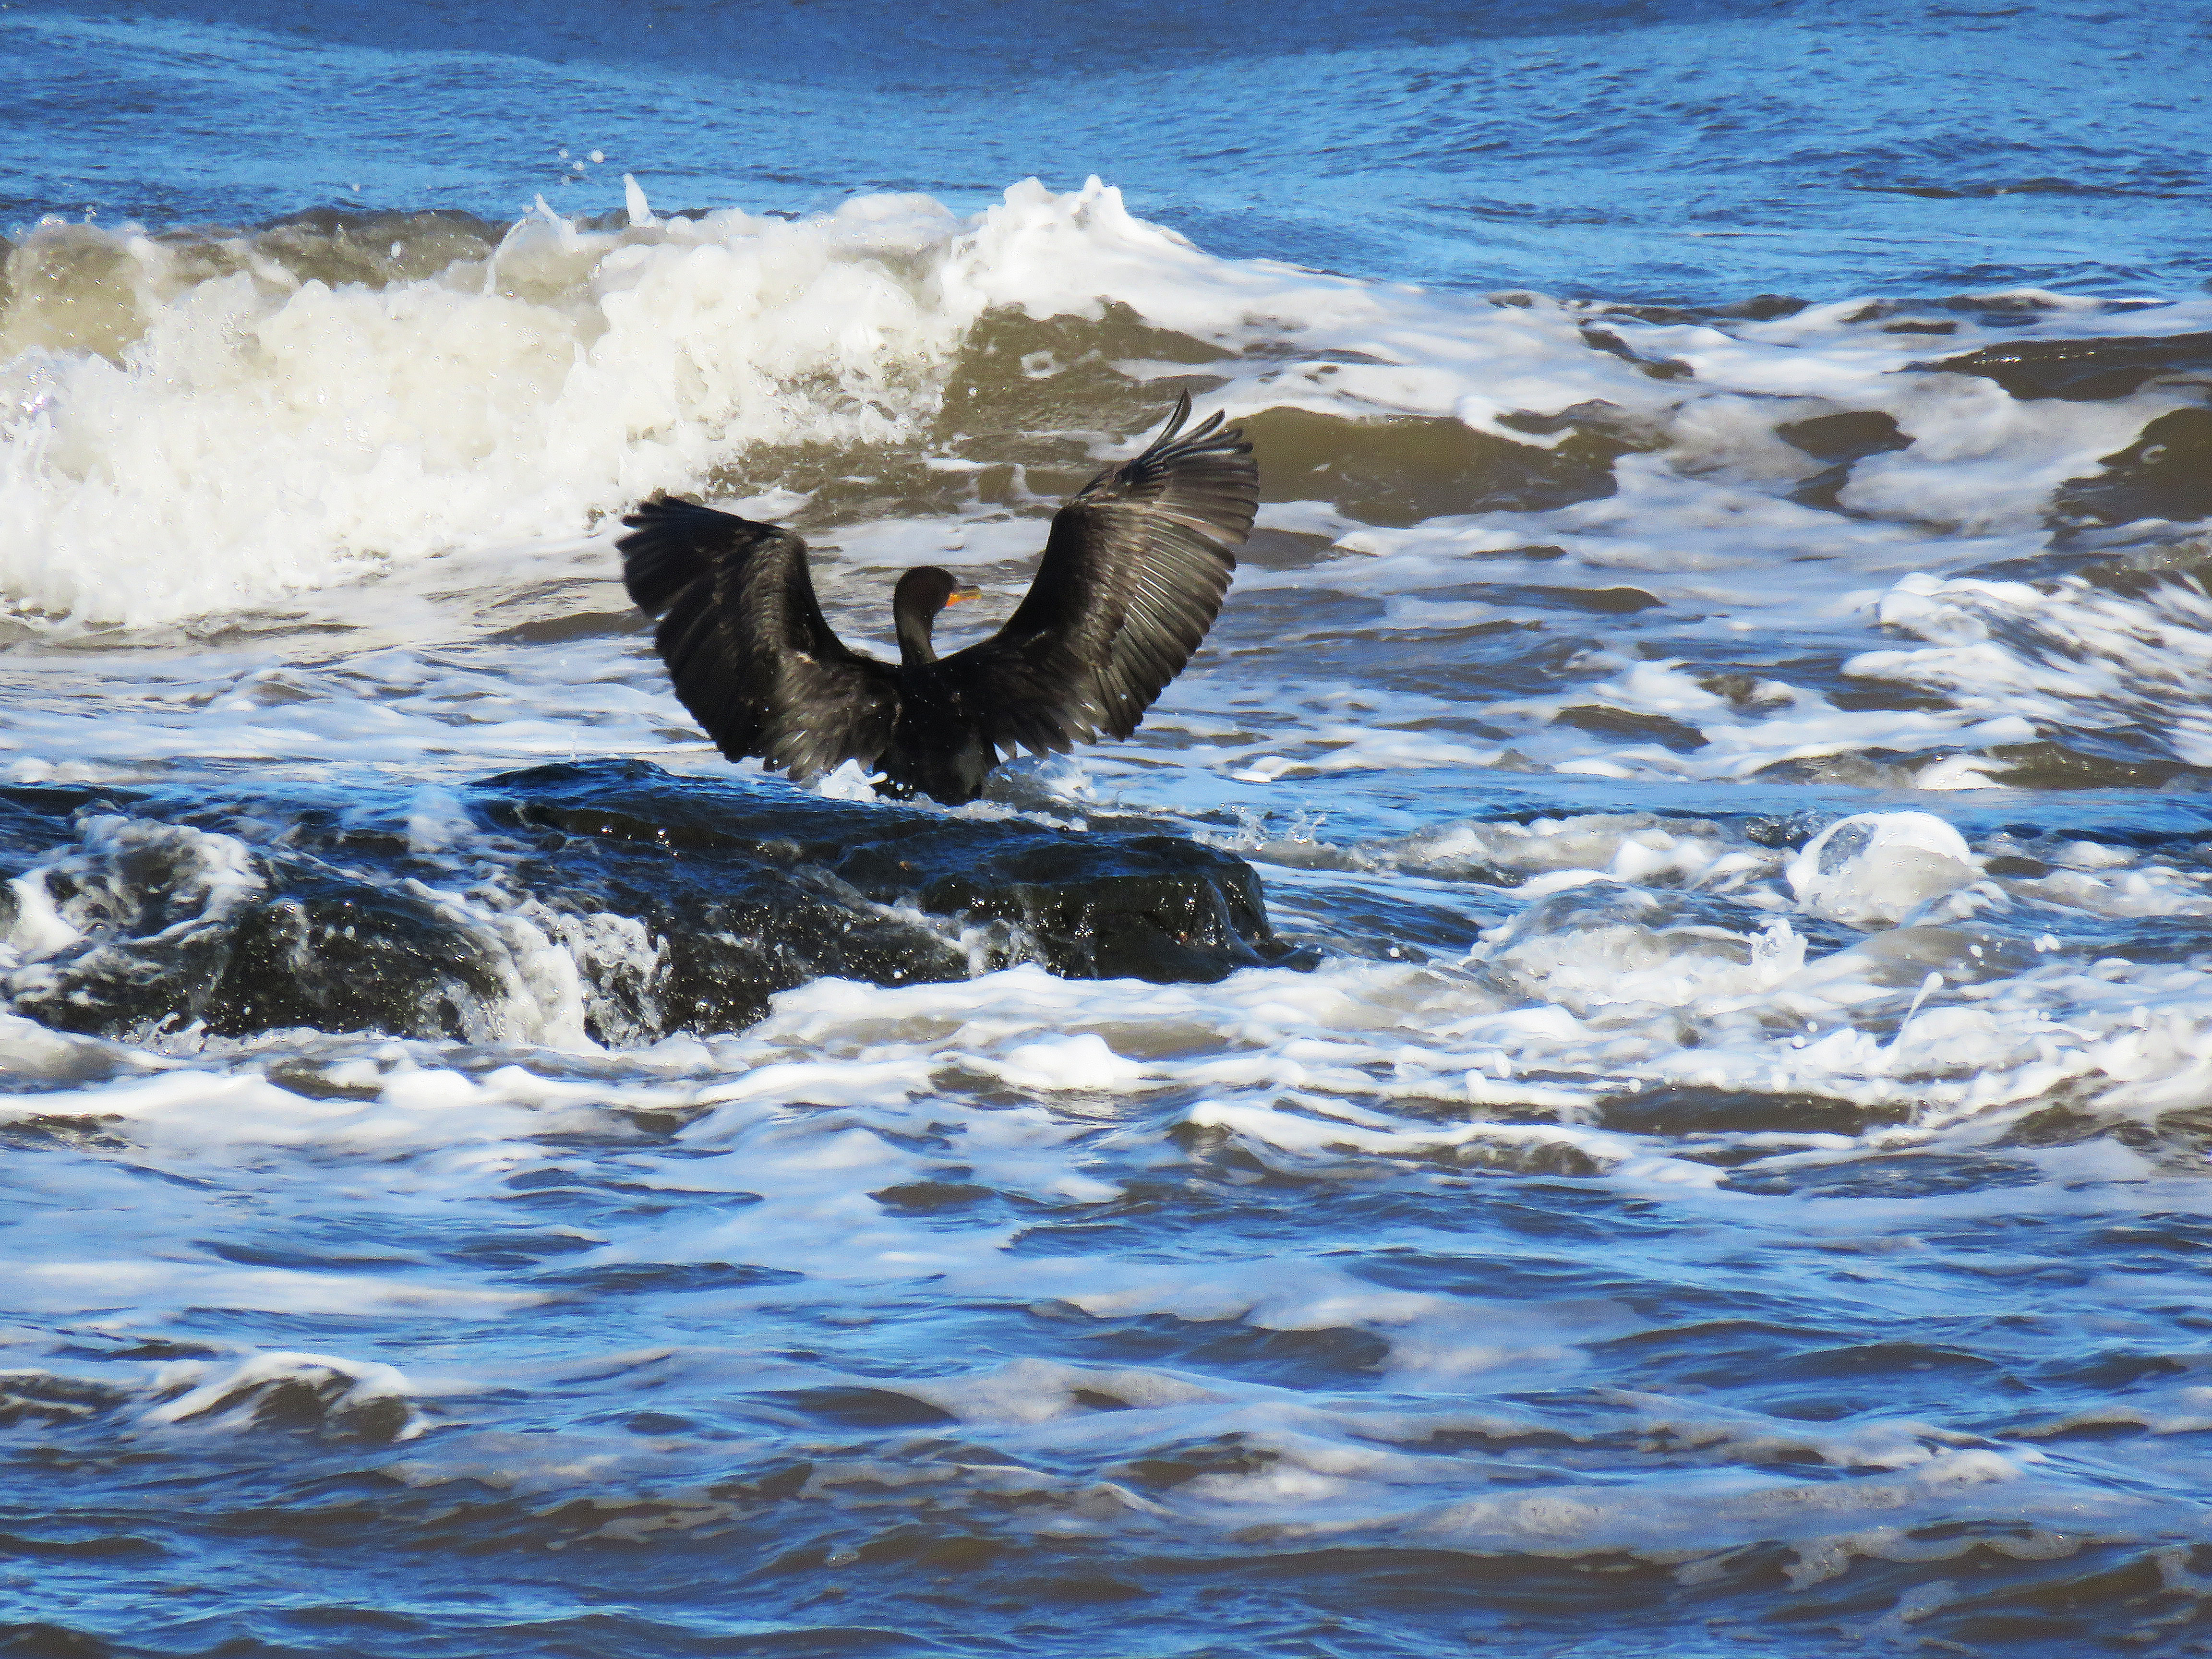 Cormorant in waves